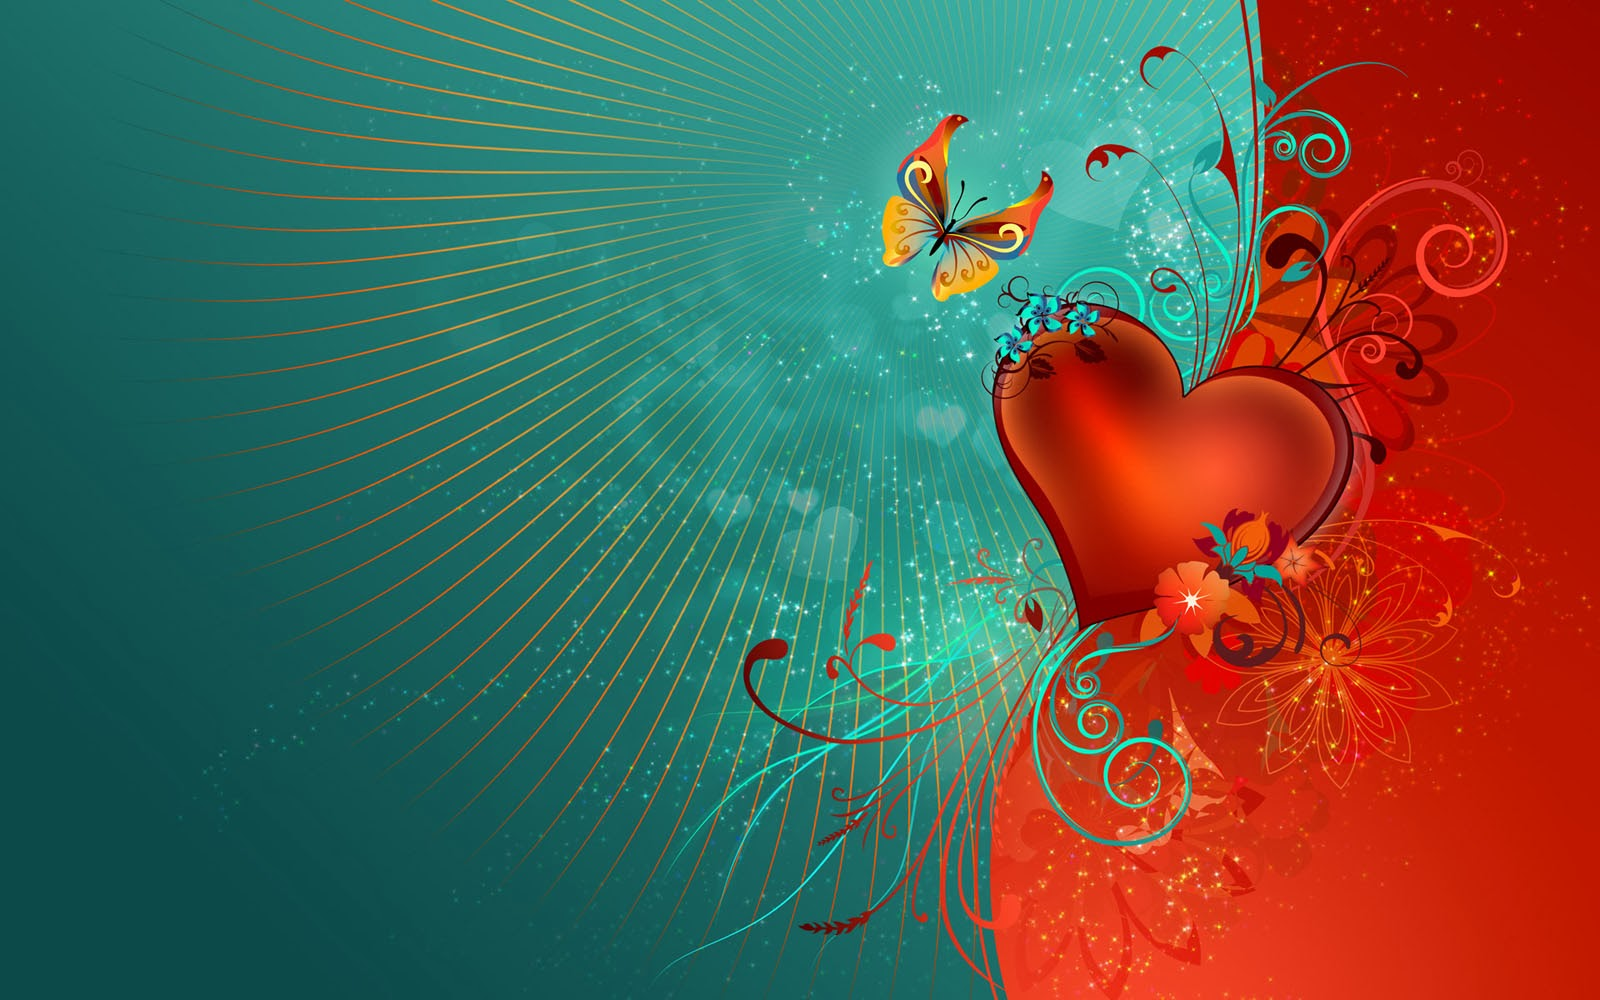 All Love Wallpaper Images : All new wallpaper : creative Love Wallpapers